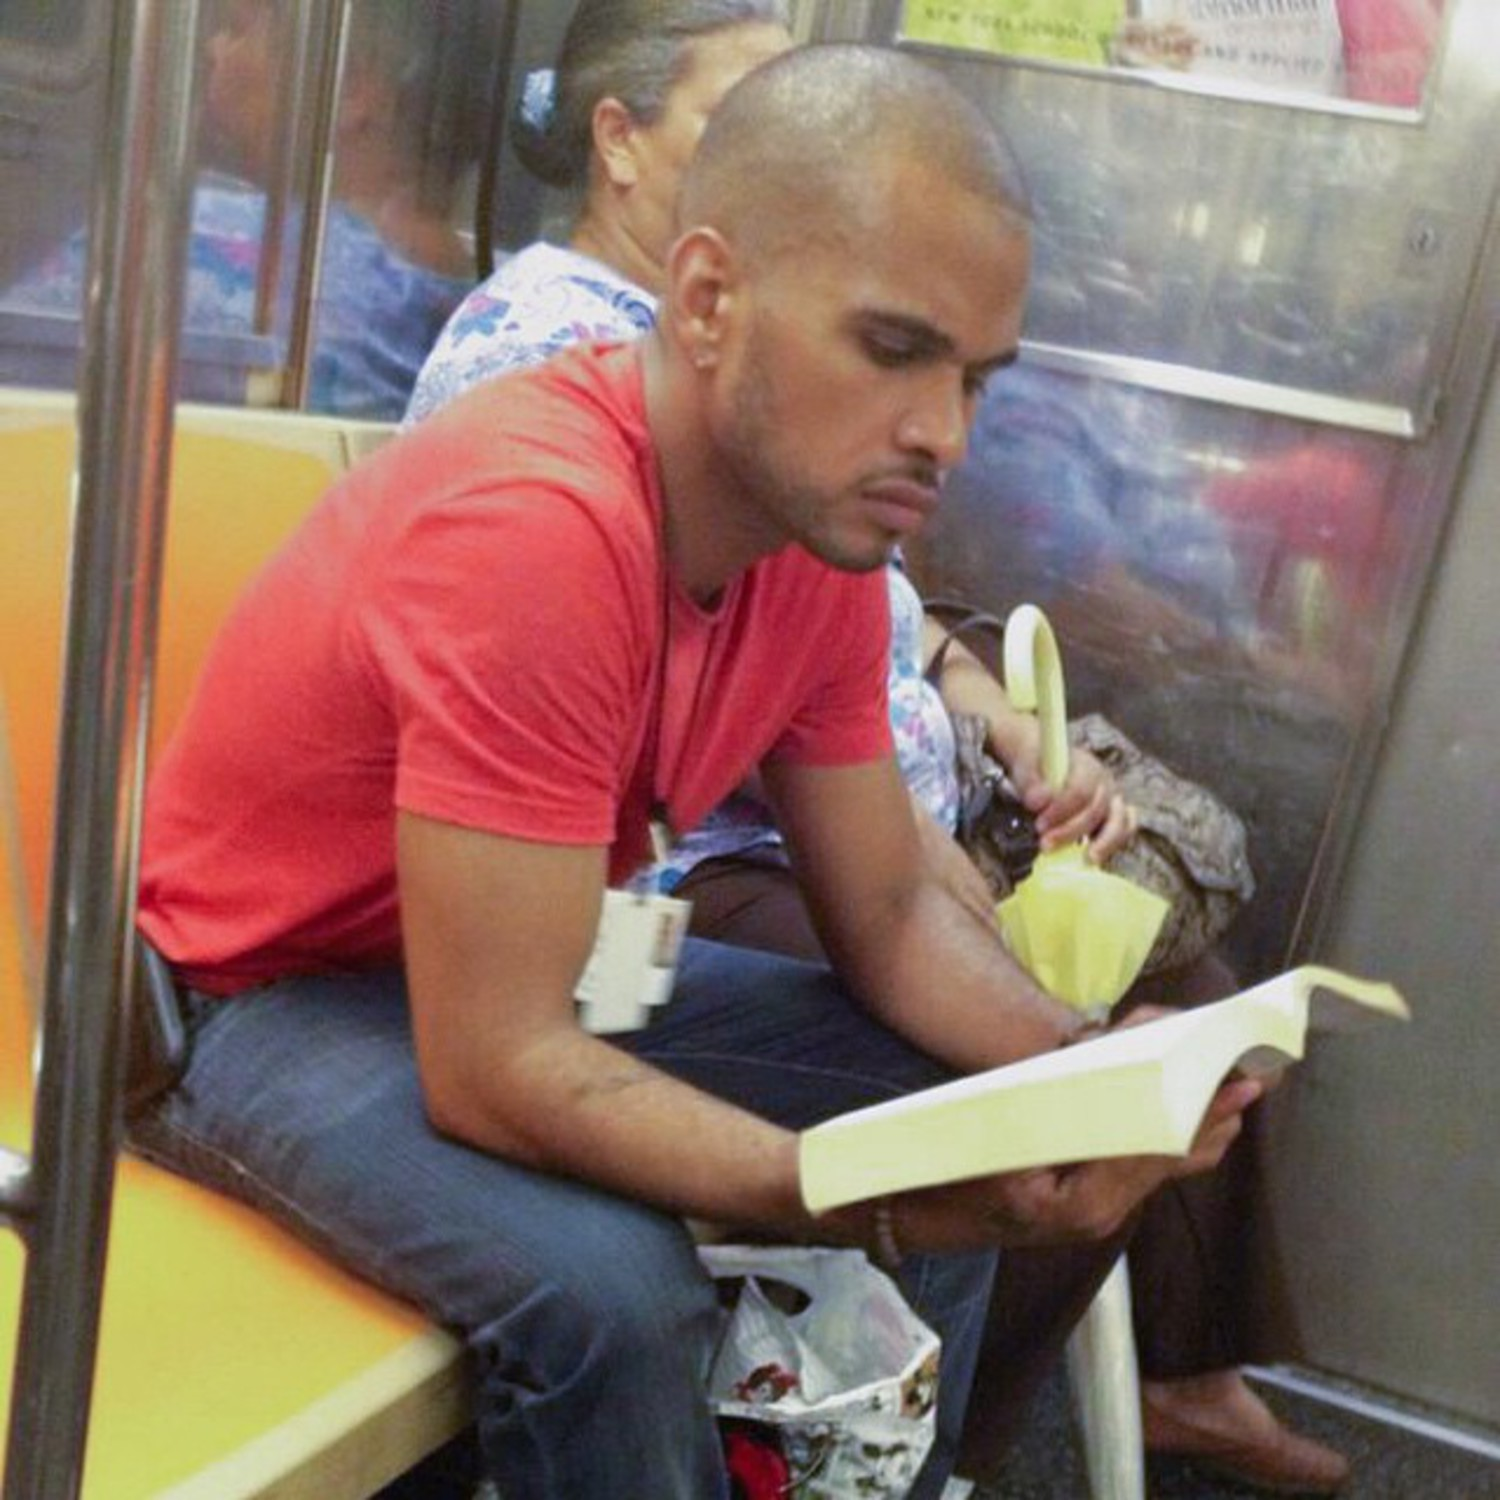 Received a pic of this bald, brooding beauty and immediately fell in love with that chiseled face. Not sure what he's reading or what those credentials are for, but I want an all access pass. #skiptheline #hotdudesreading #HDRfangram